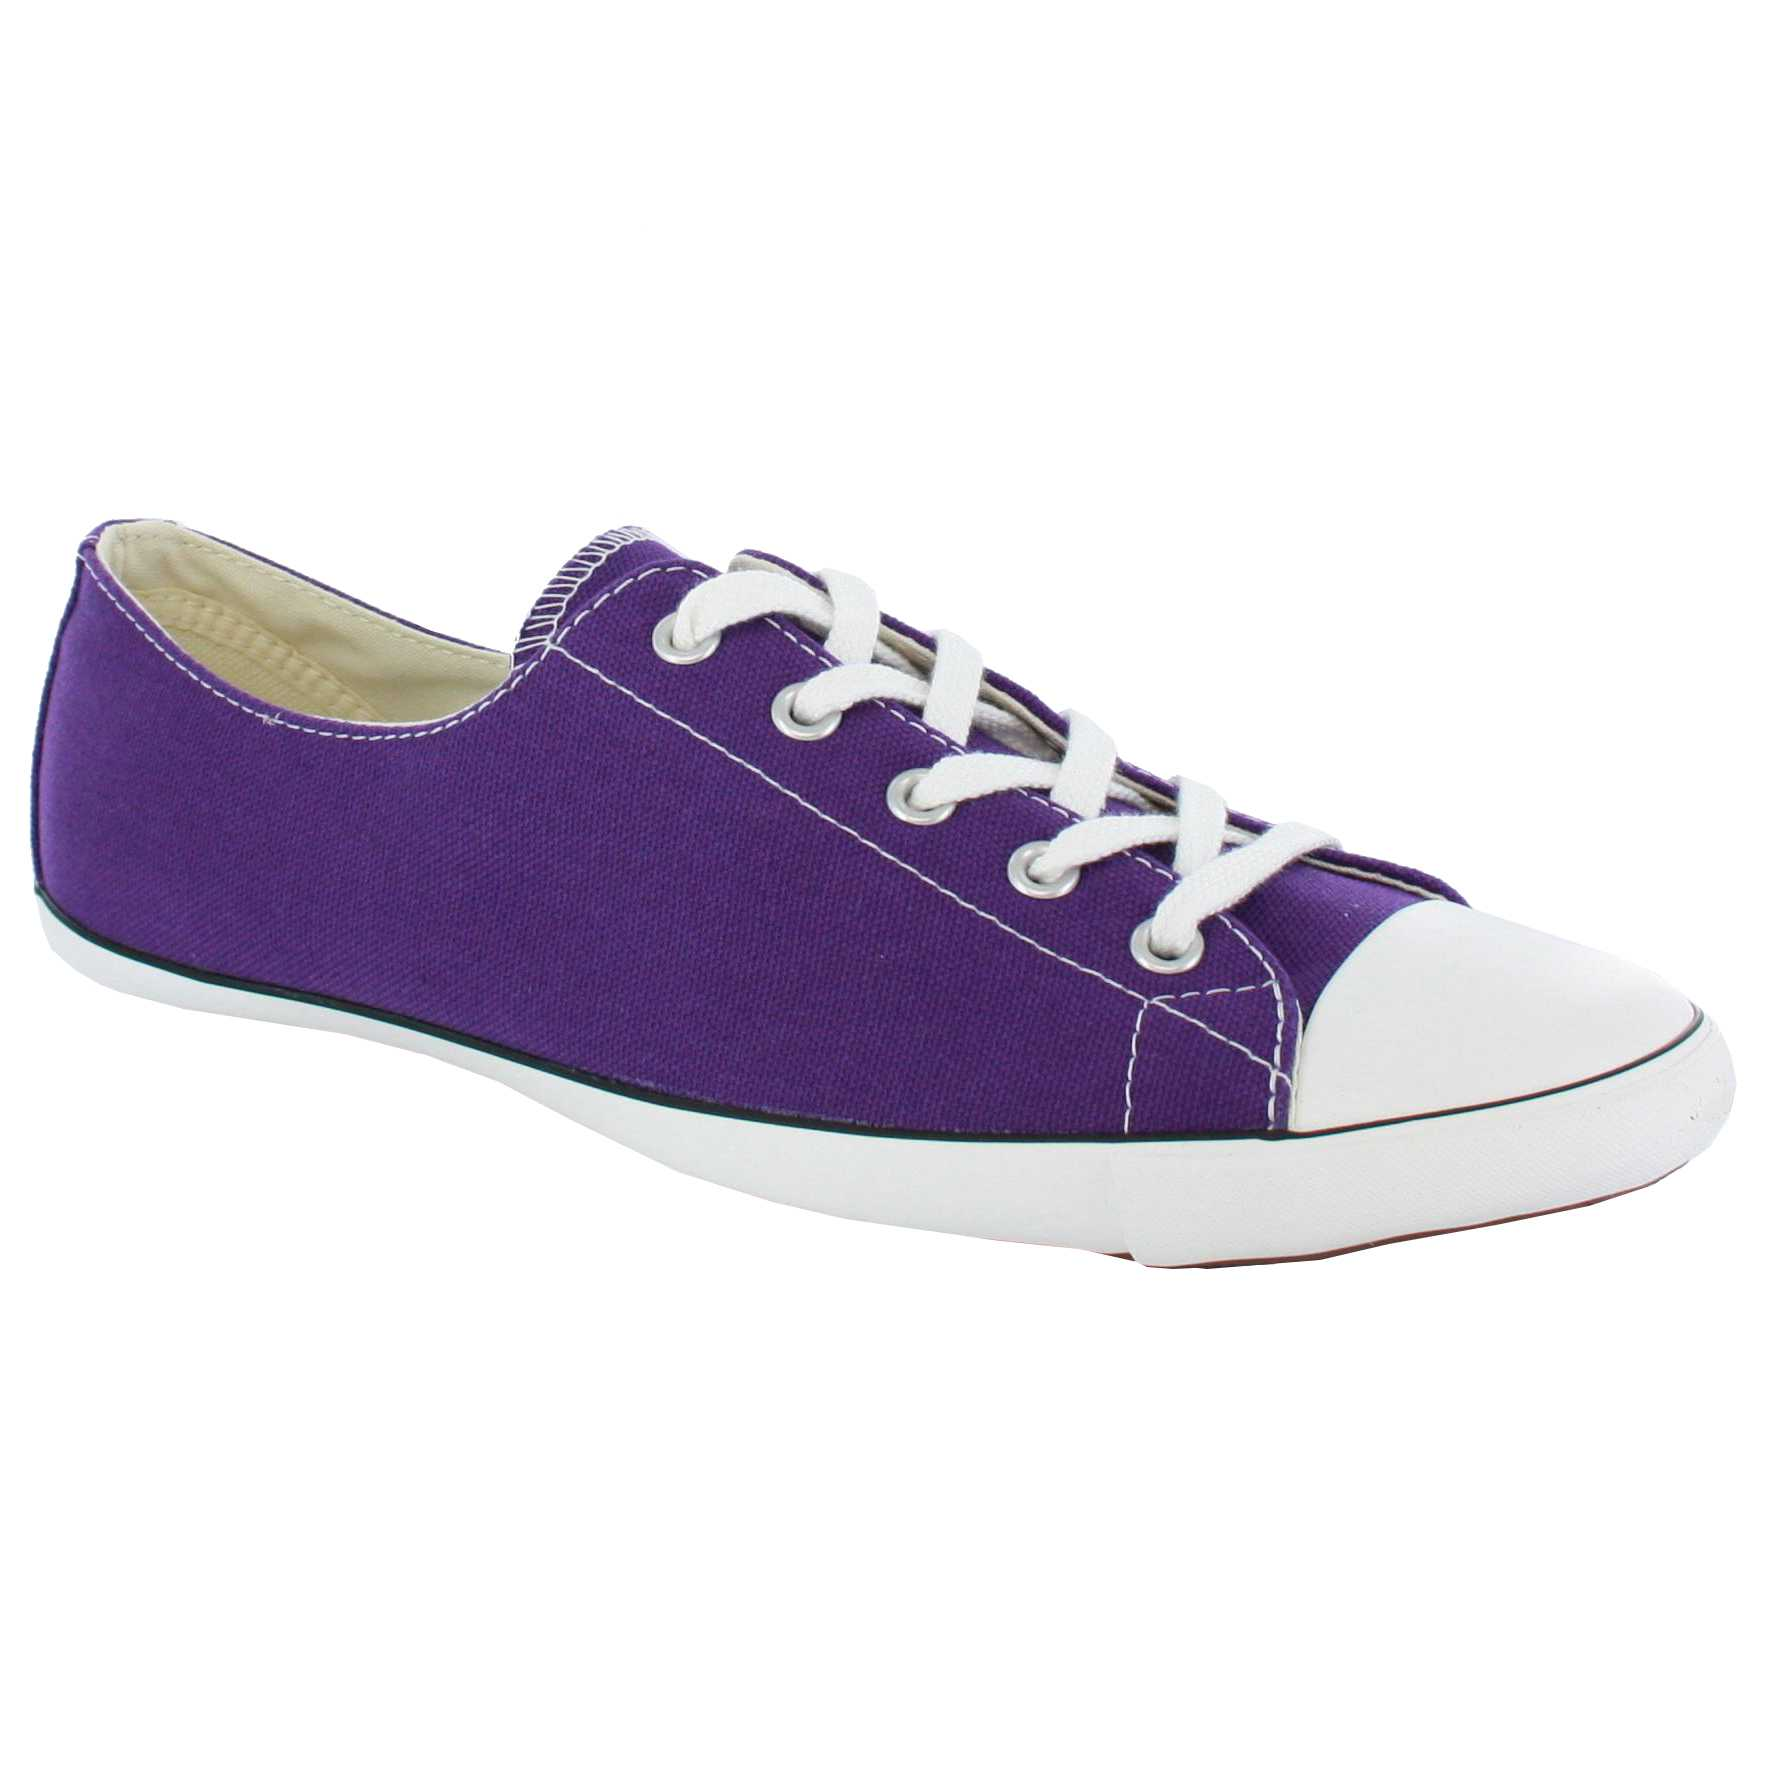 converse all star light ox light purple womens shoes ebay. Black Bedroom Furniture Sets. Home Design Ideas